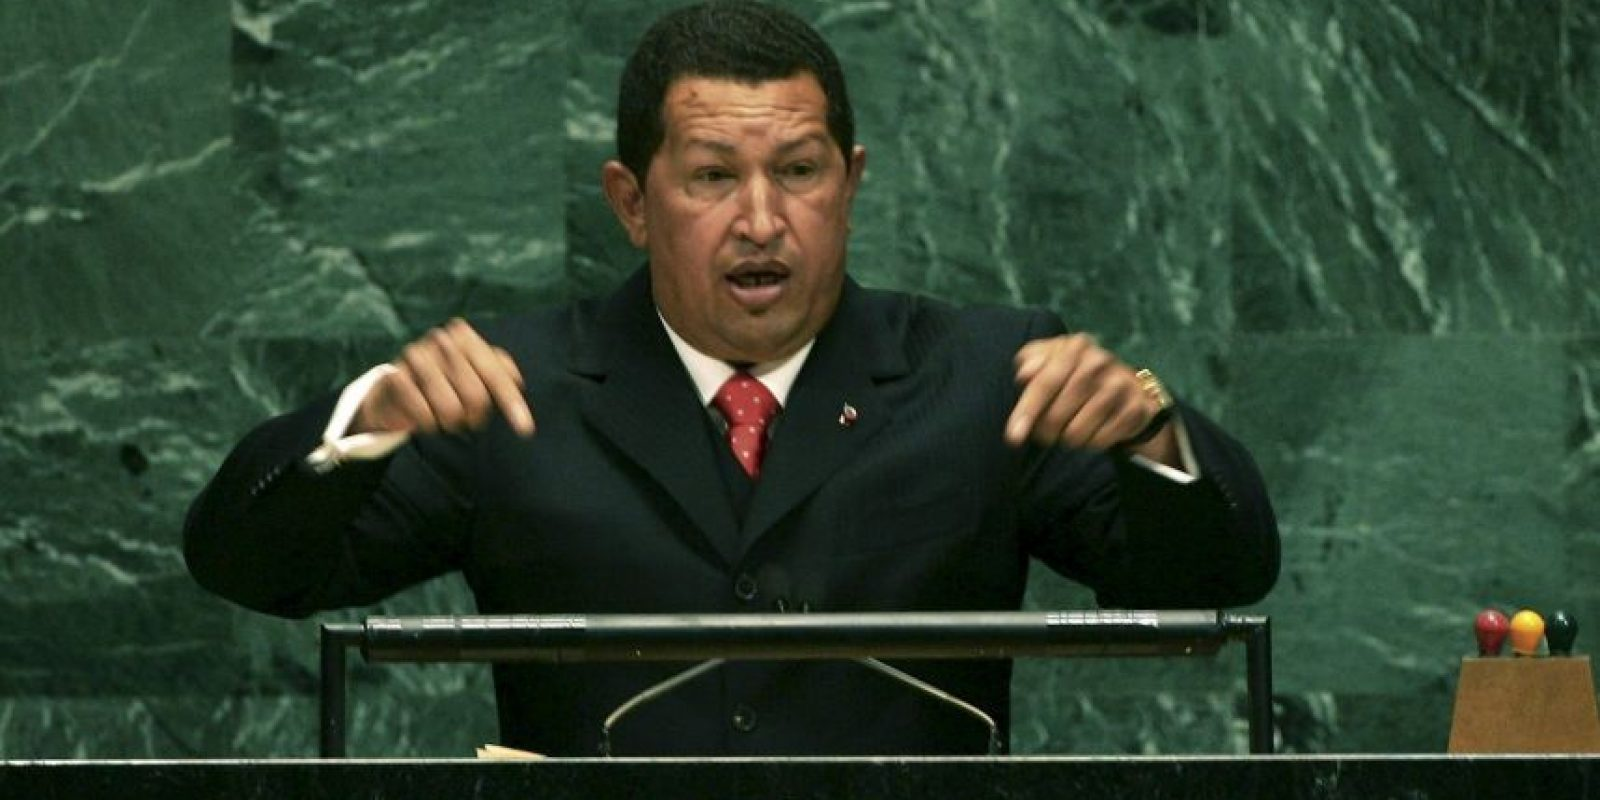 1. Hugo Chávez en 2006, presidente de Venezuela Foto: Getty Images